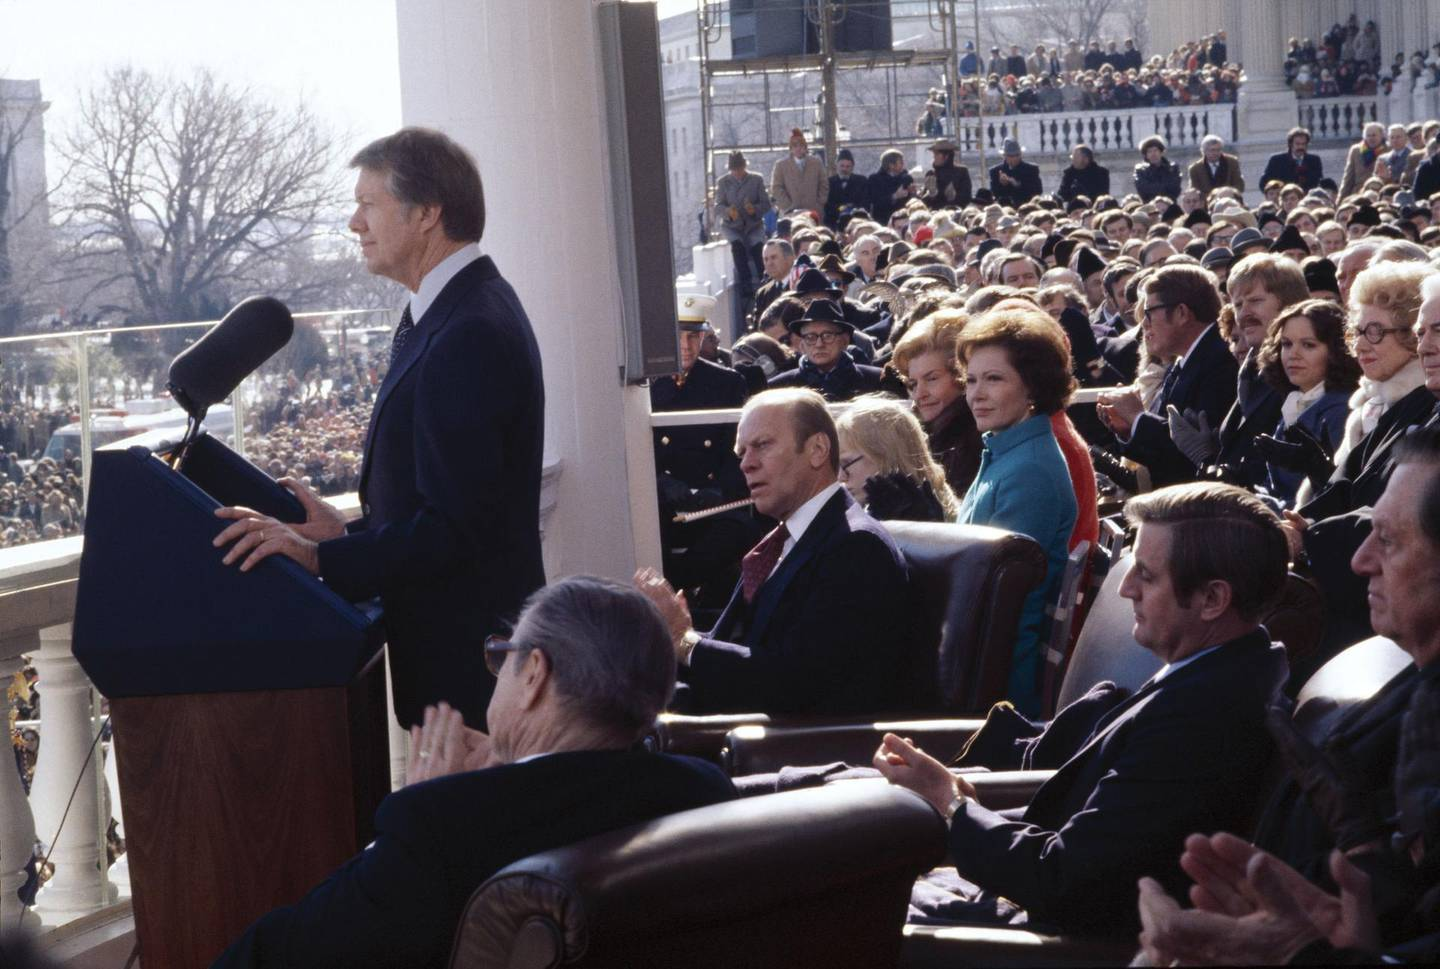 WASHINGTON - JANUARY 20:  (NO U.S. TABLOIDS) U.S. President Jimmy Carter makes his inaugural speech after being sworn in on January 20, 1977 on the East Portico of the U.S. Capitol, Washington, D.C. Sitting (counter-clockwise from bottom) are Vice President Nelson A. Rockefeller (back to camera), Vice President-elect Walter Mondale, First Lady Roselyn Carter (in blue), former First Lady Betty Ford (behind right of Mrs Carter) and former President Gerald R. Ford (C). Chief Justice Warren E. Burger (not pictured) administered the oath of office. (Photo by David Hume Kennerly/Getty Images)